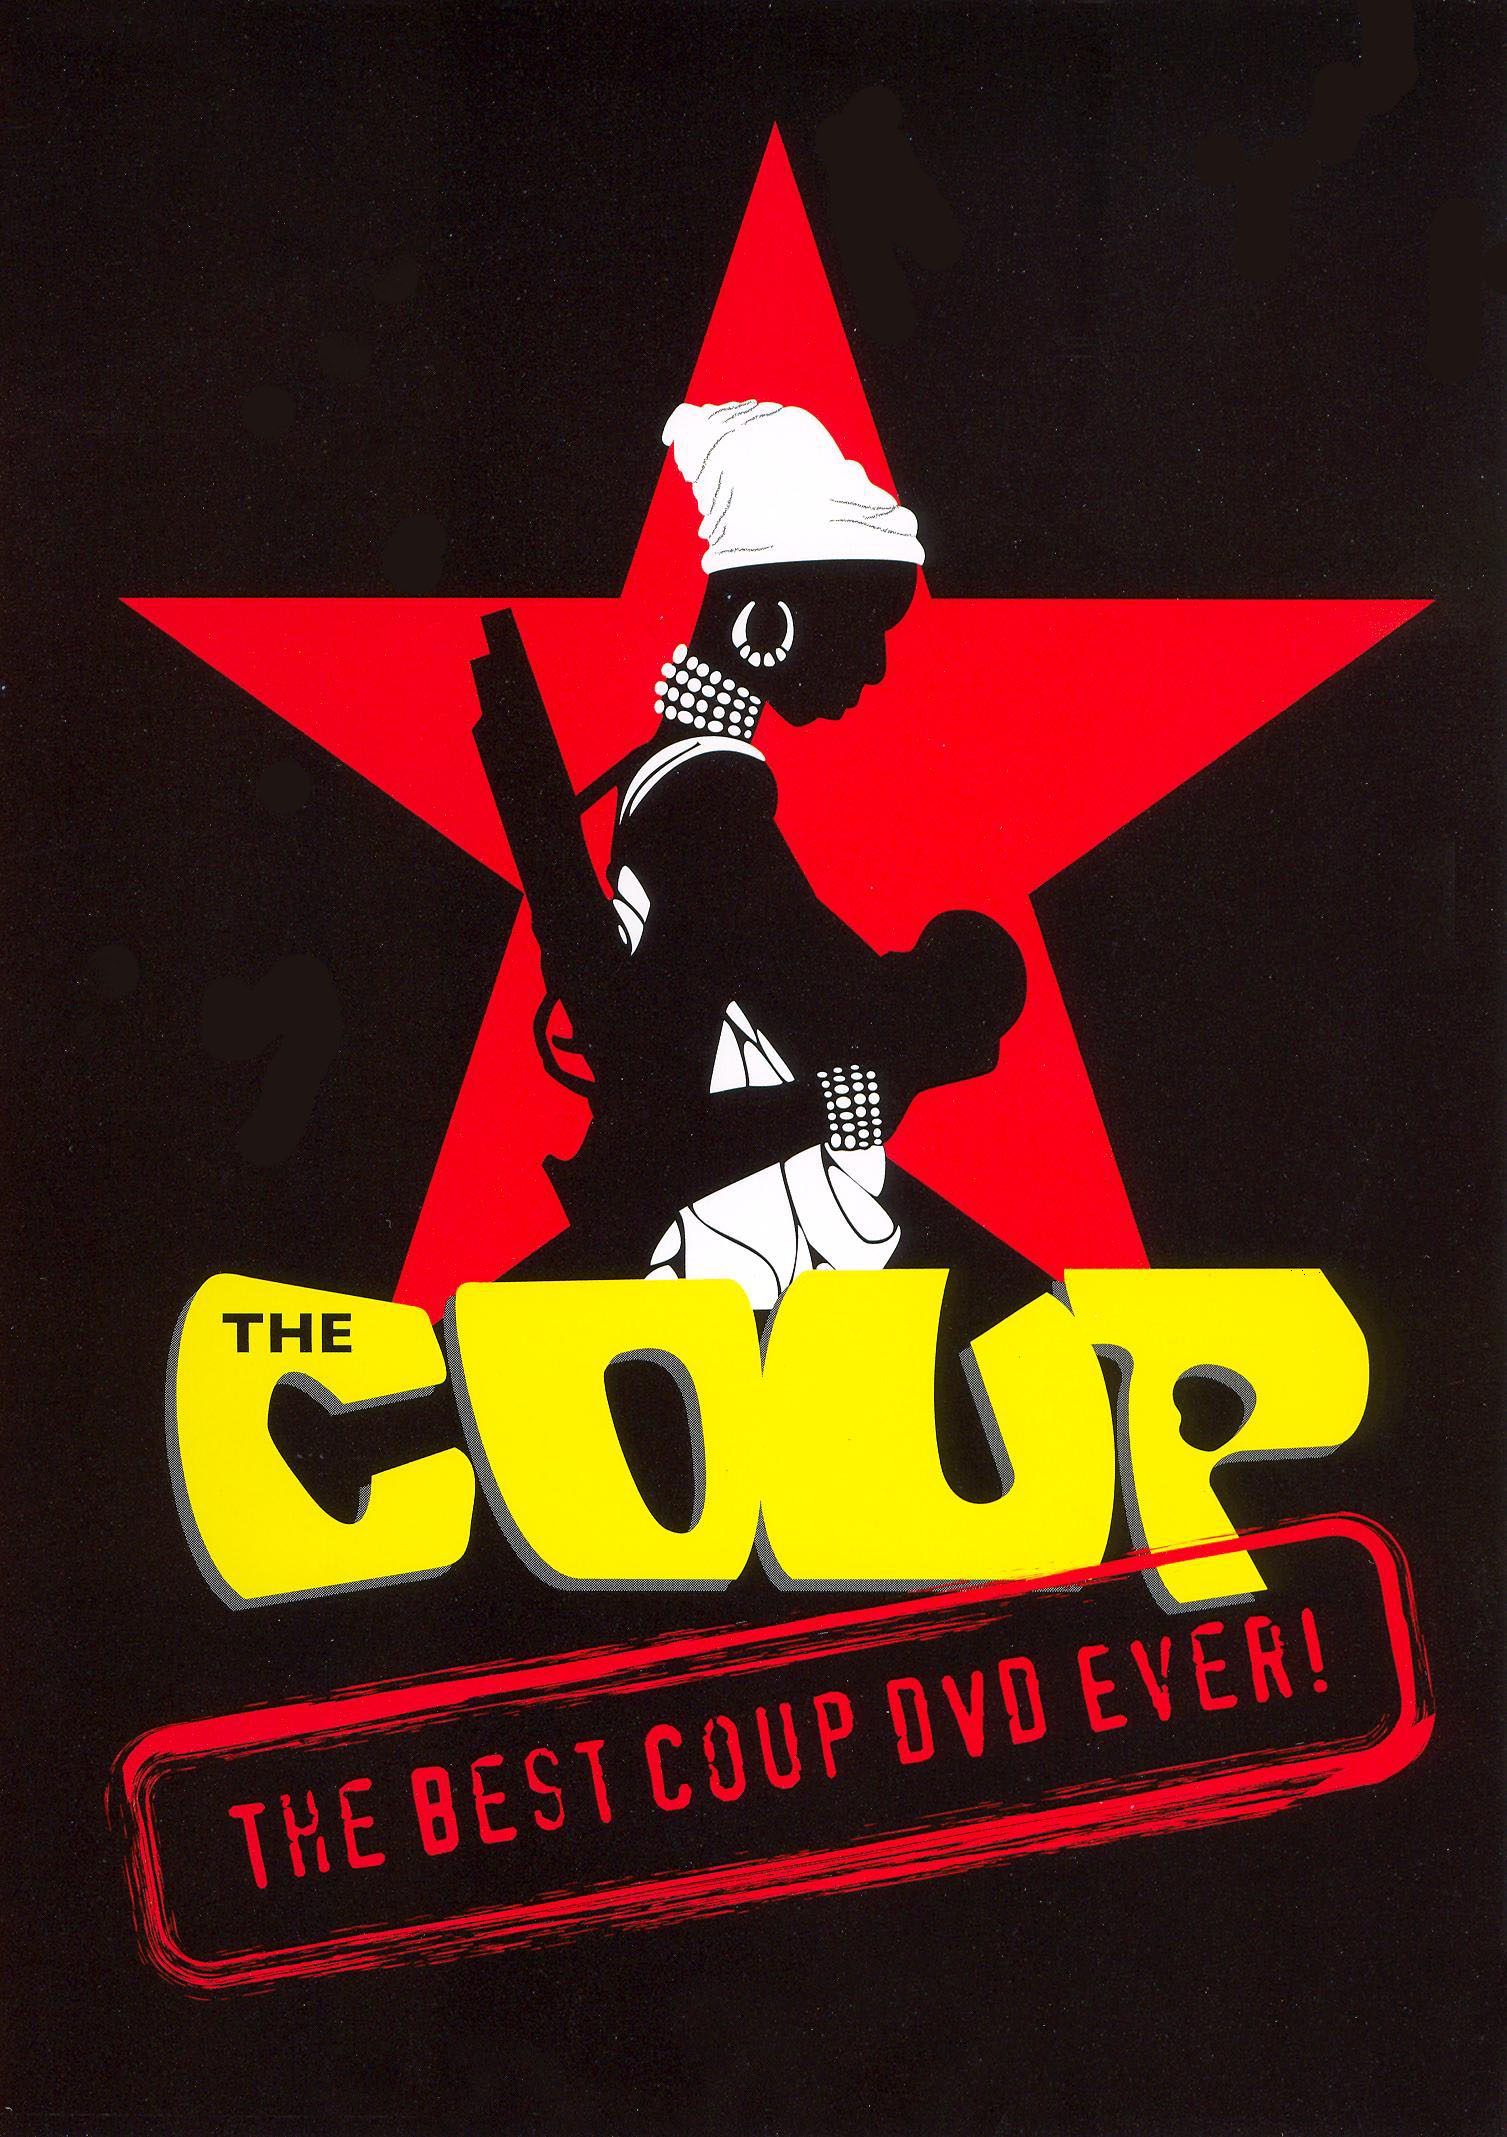 Coup: The Best Coup DVD Ever